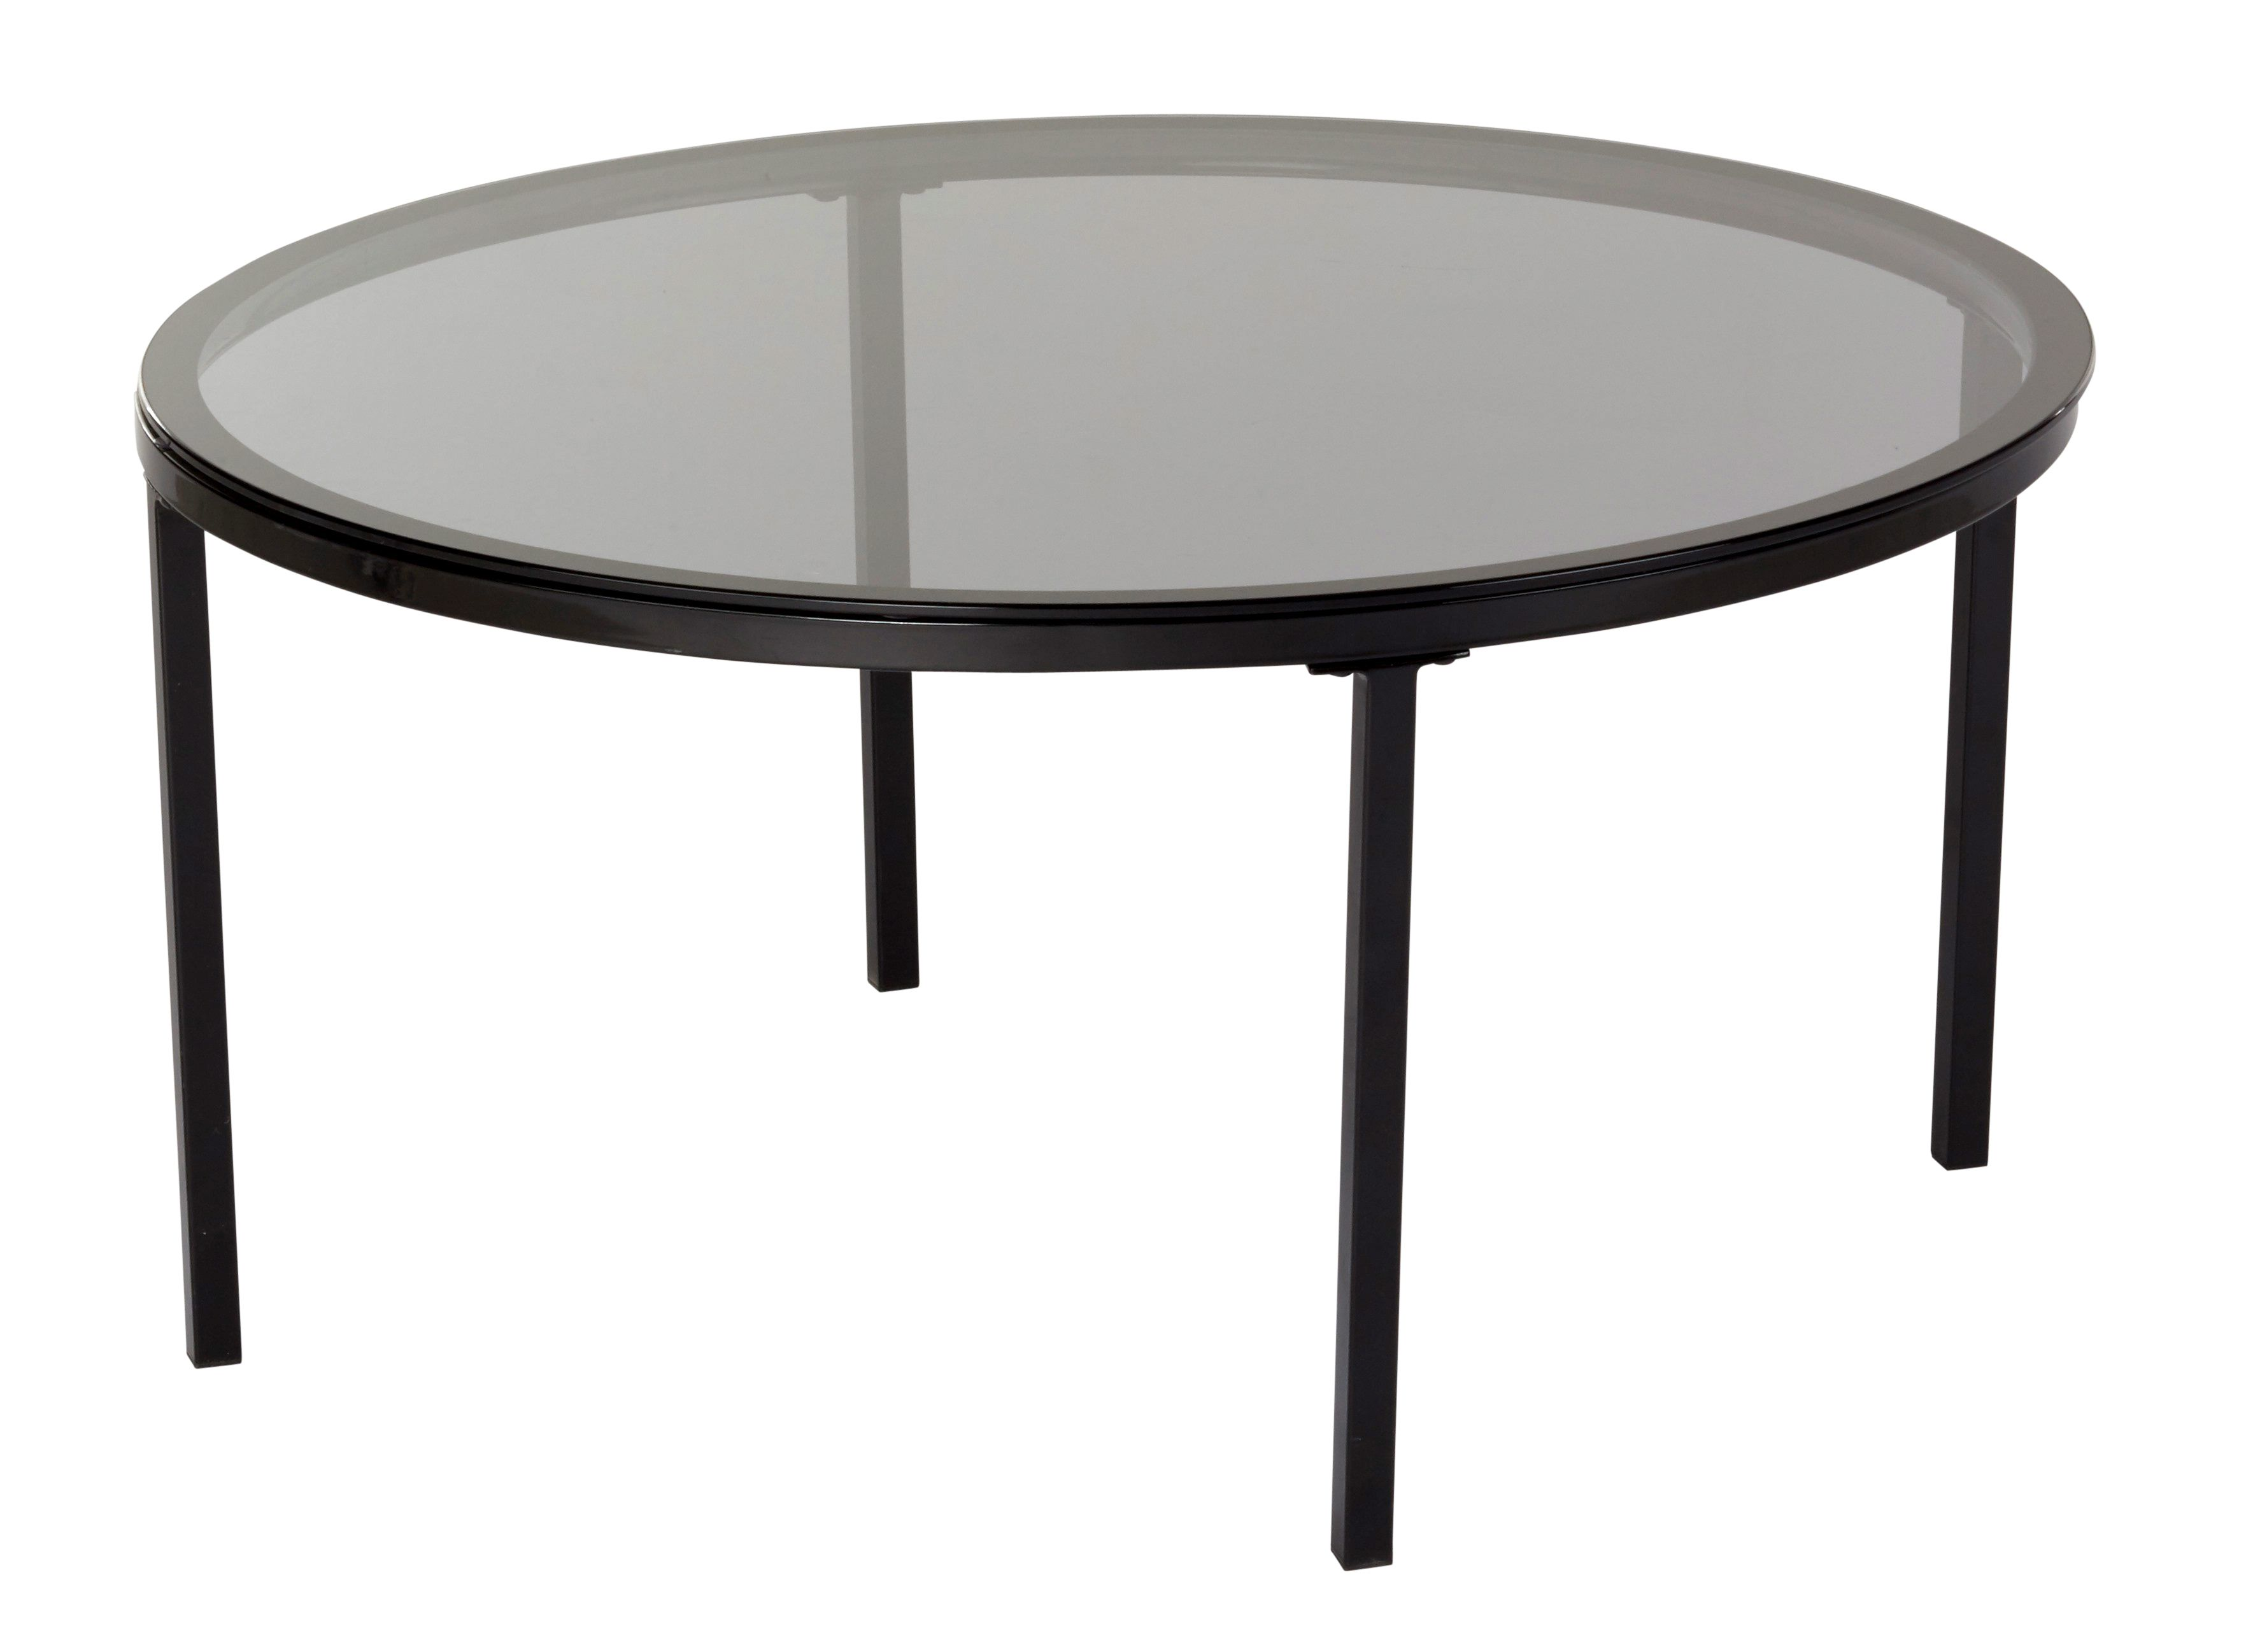 Table Basse Industrielle Ronde Claudia Verre Et Noir Table Basse Table Basse Noire Table Basse Industrielle